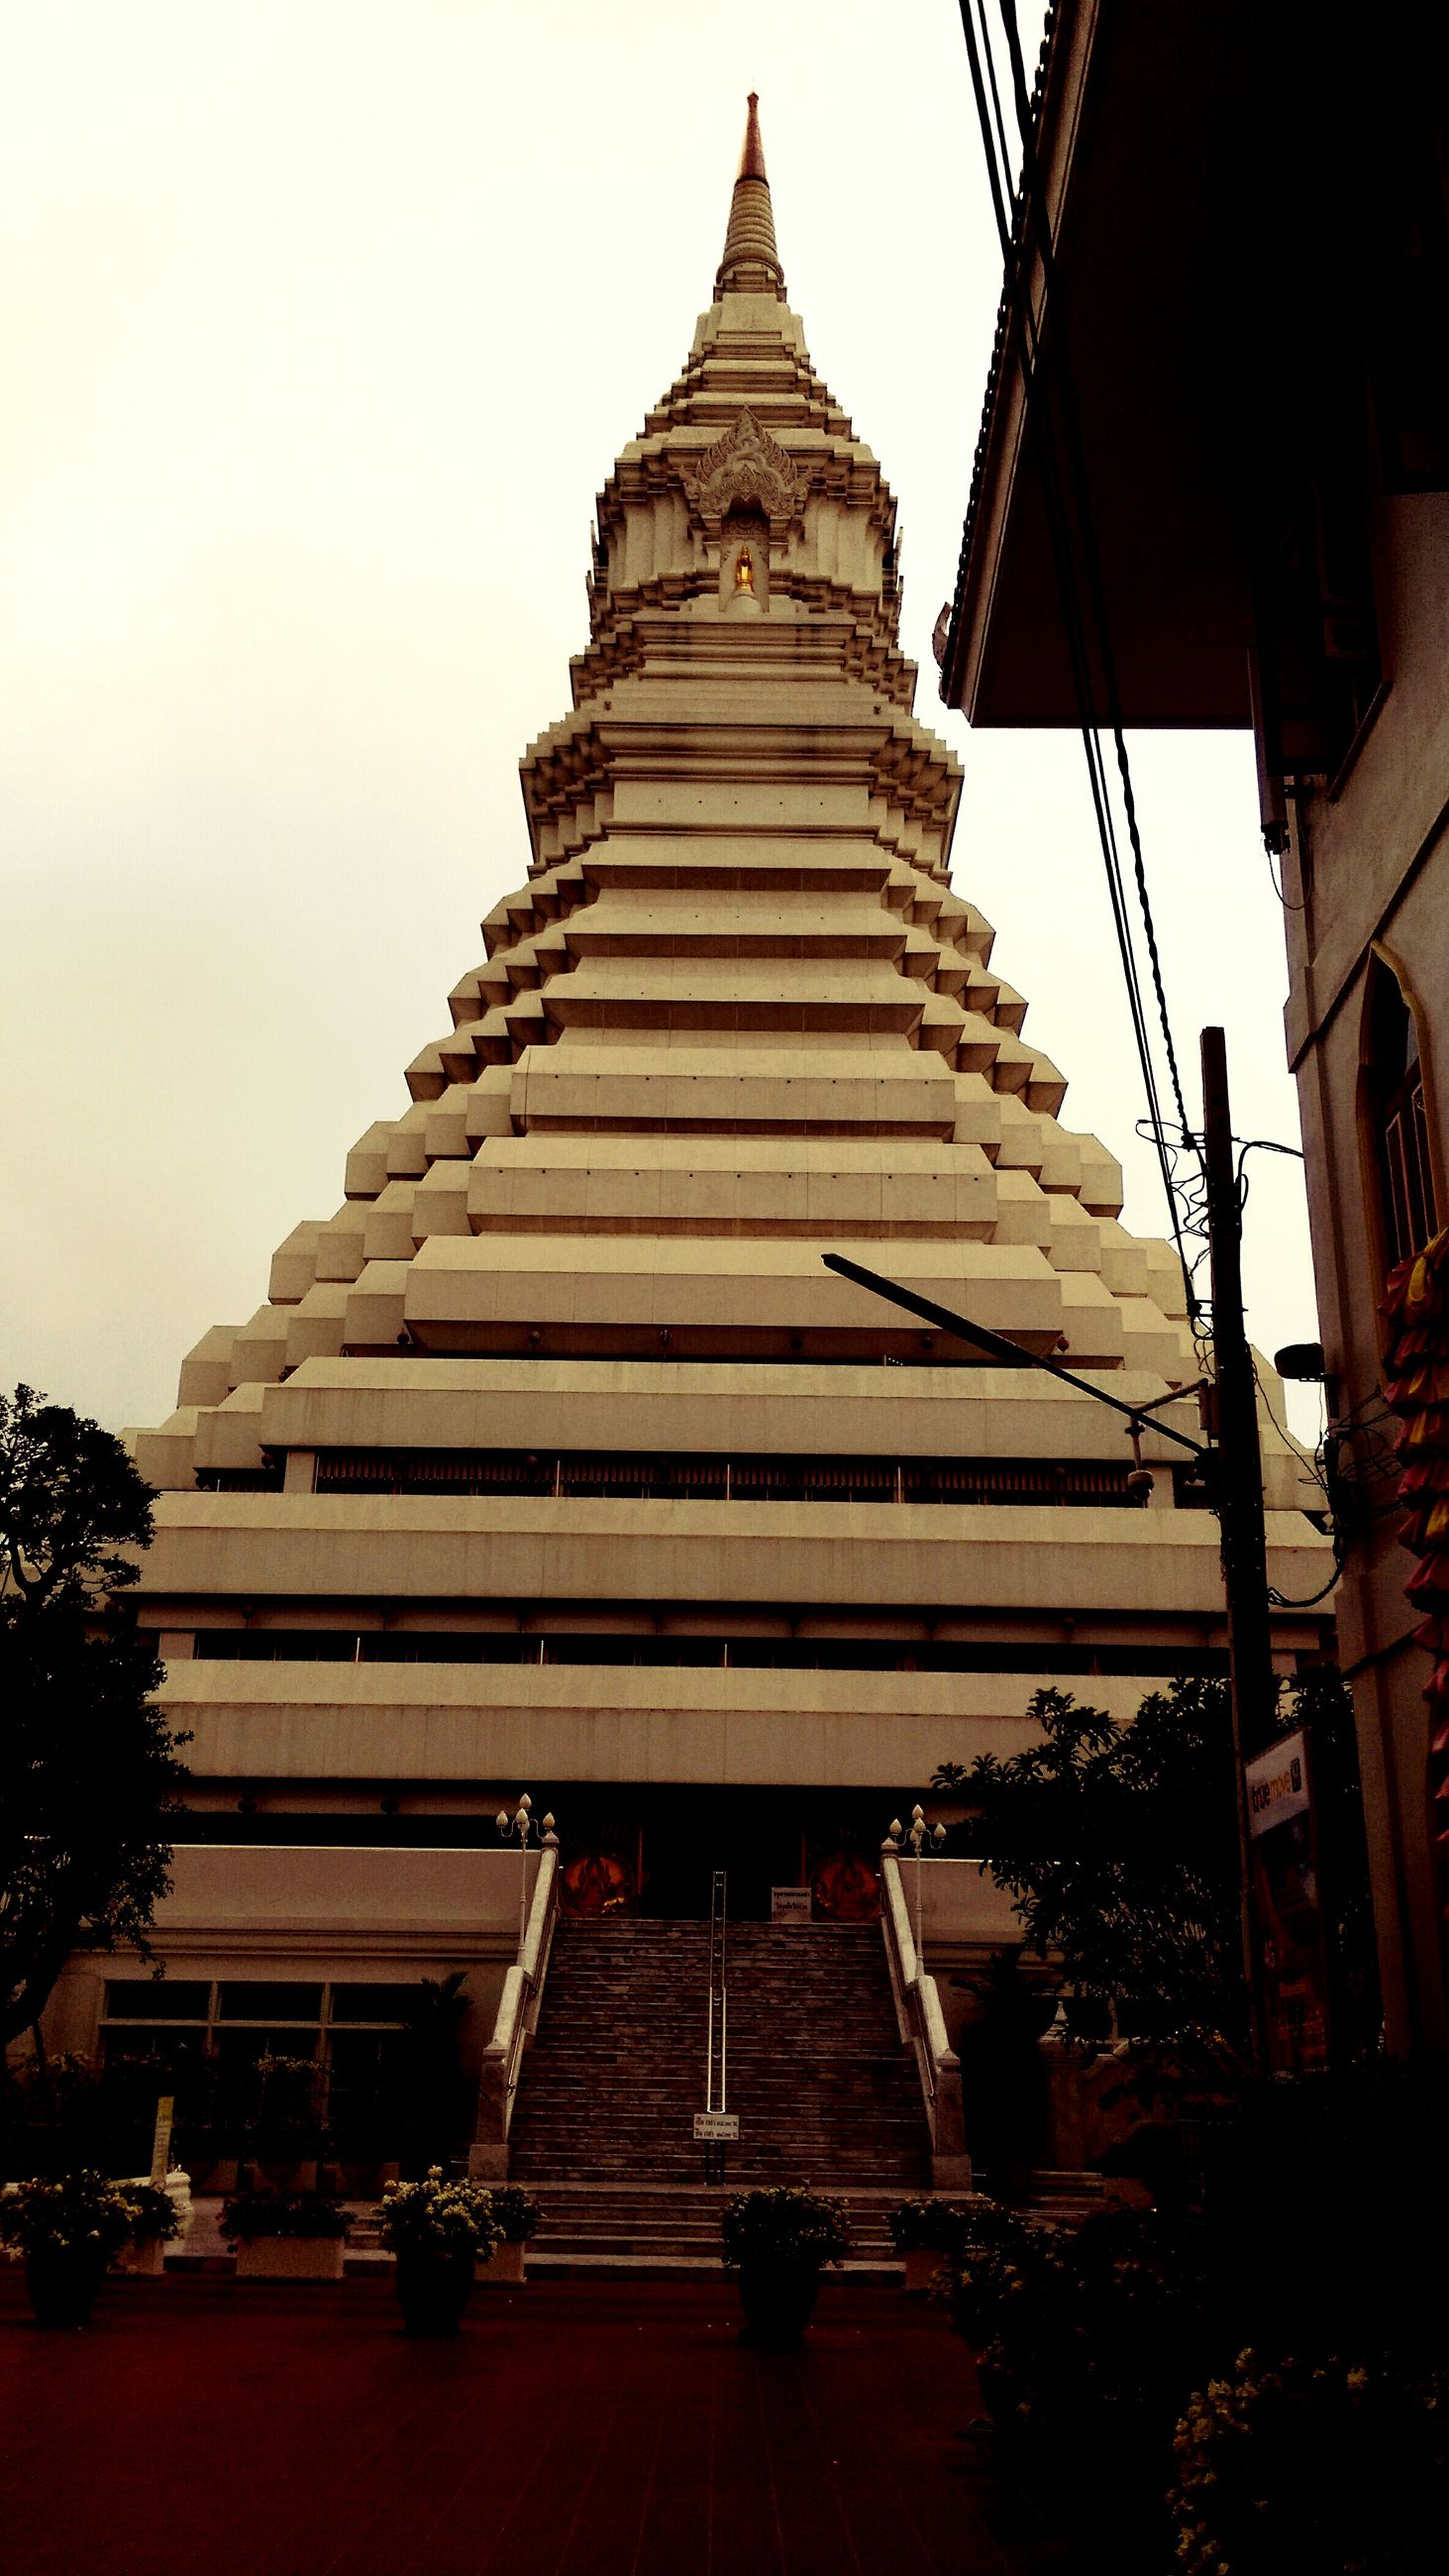 architecture, built structure, building exterior, low angle view, place of worship, temple - building, religion, famous place, spirituality, clear sky, history, travel destinations, travel, international landmark, tourism, sky, temple, outdoors, cultures